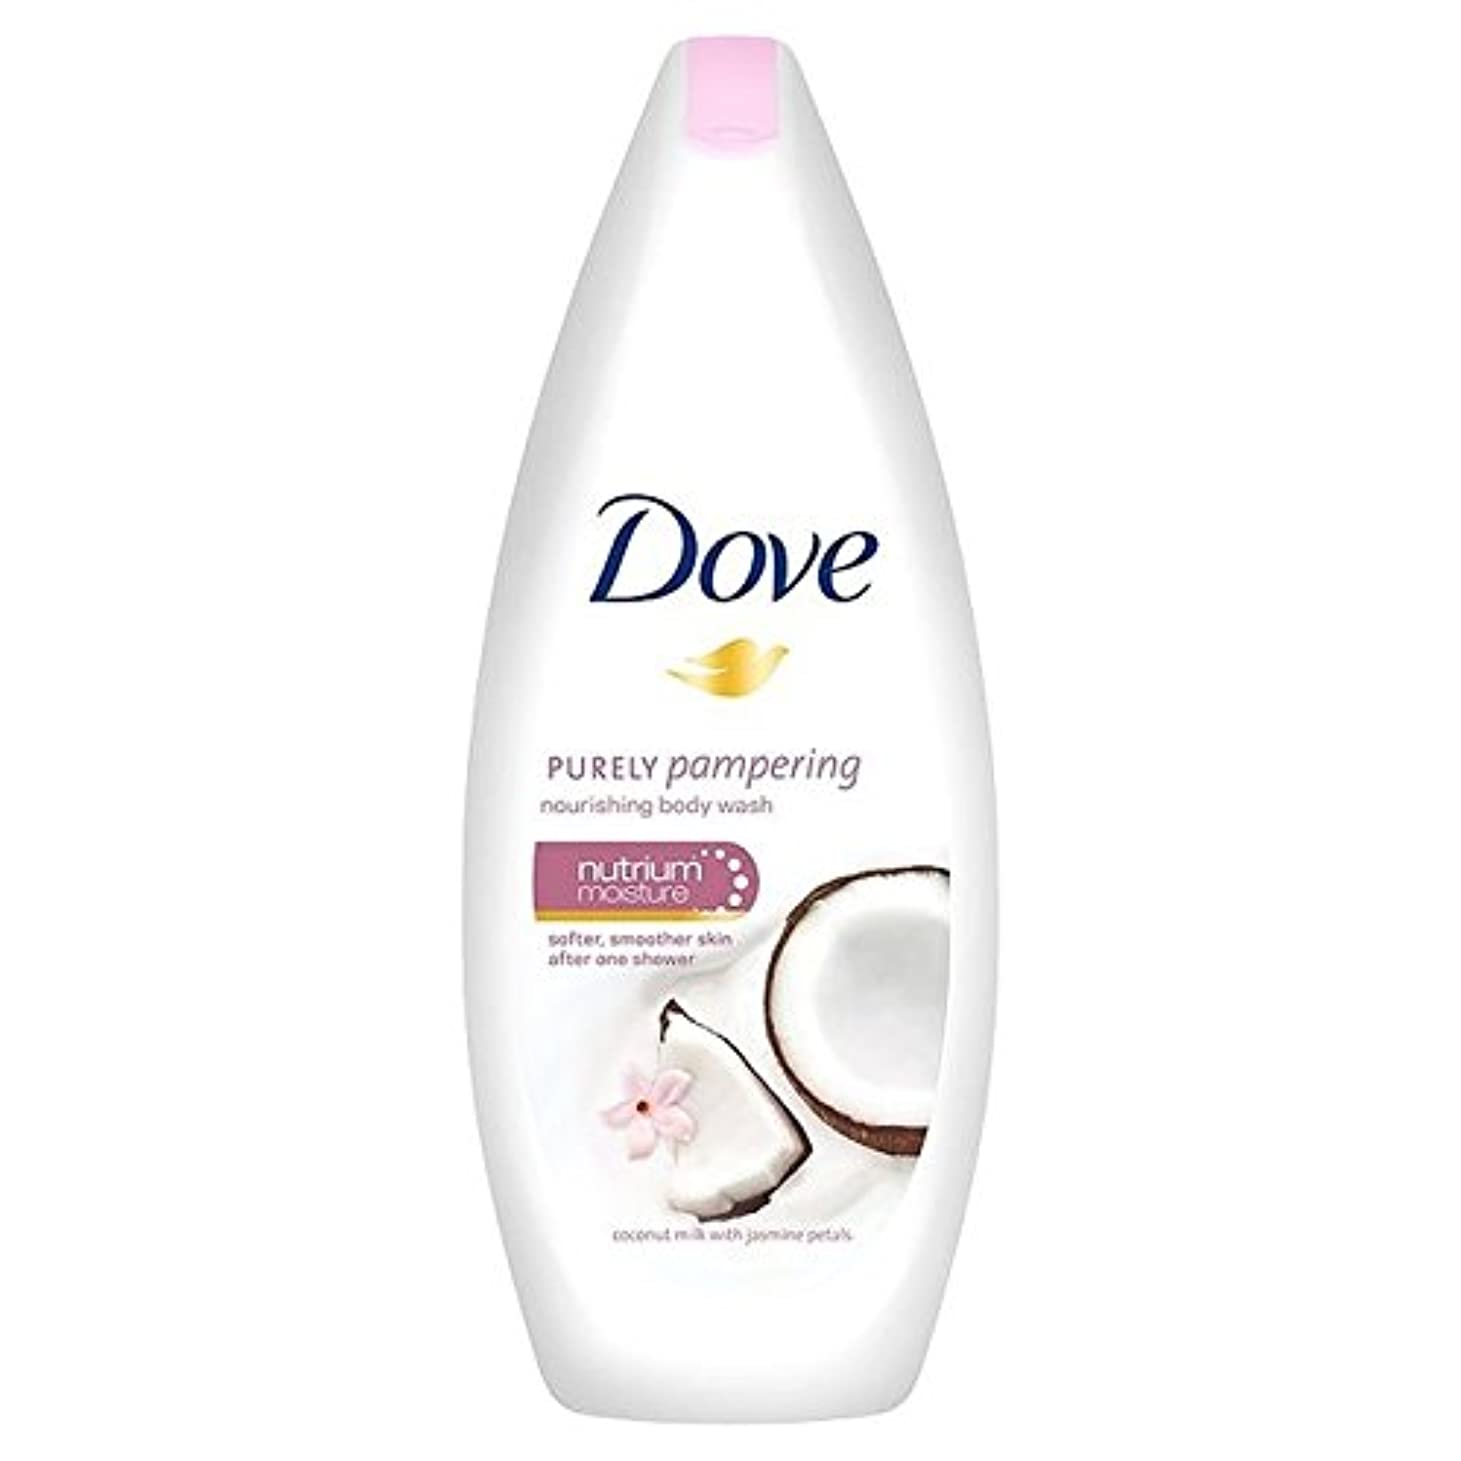 Dove Purely Pampering Coconut Body Wash 250ml (Pack of 6) - 鳩純粋に甘やかすココナッツボディウォッシュ250ミリリットル x6 [並行輸入品]